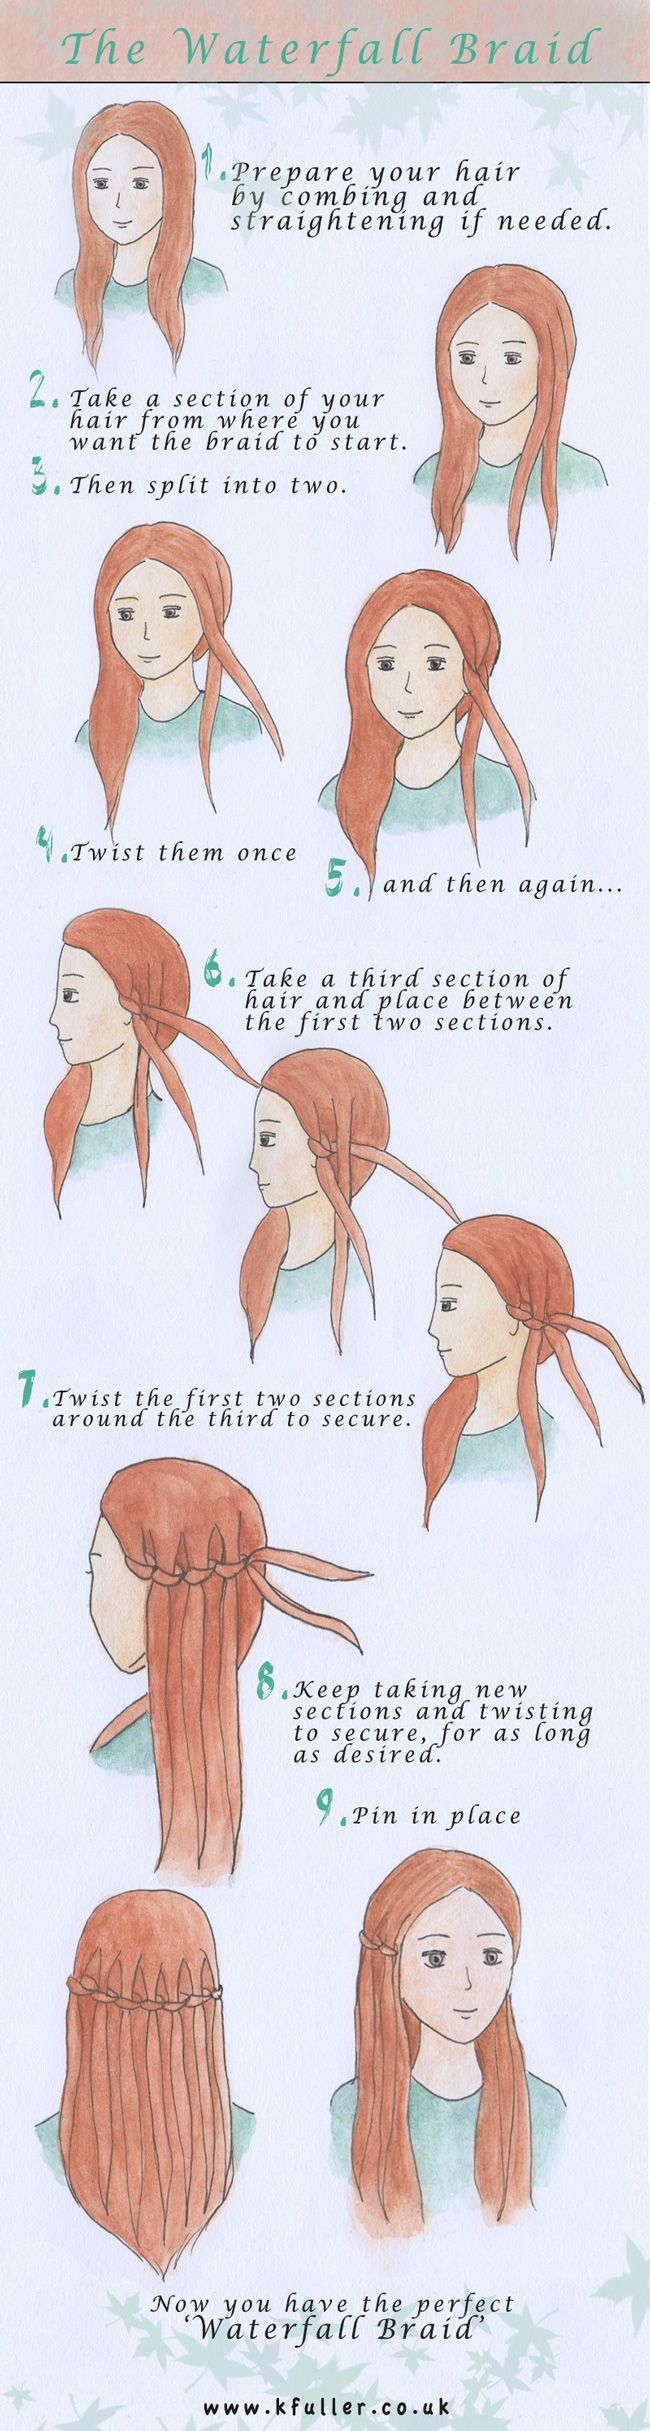 really easy directions for a waterfall braid. Been looking for something like…